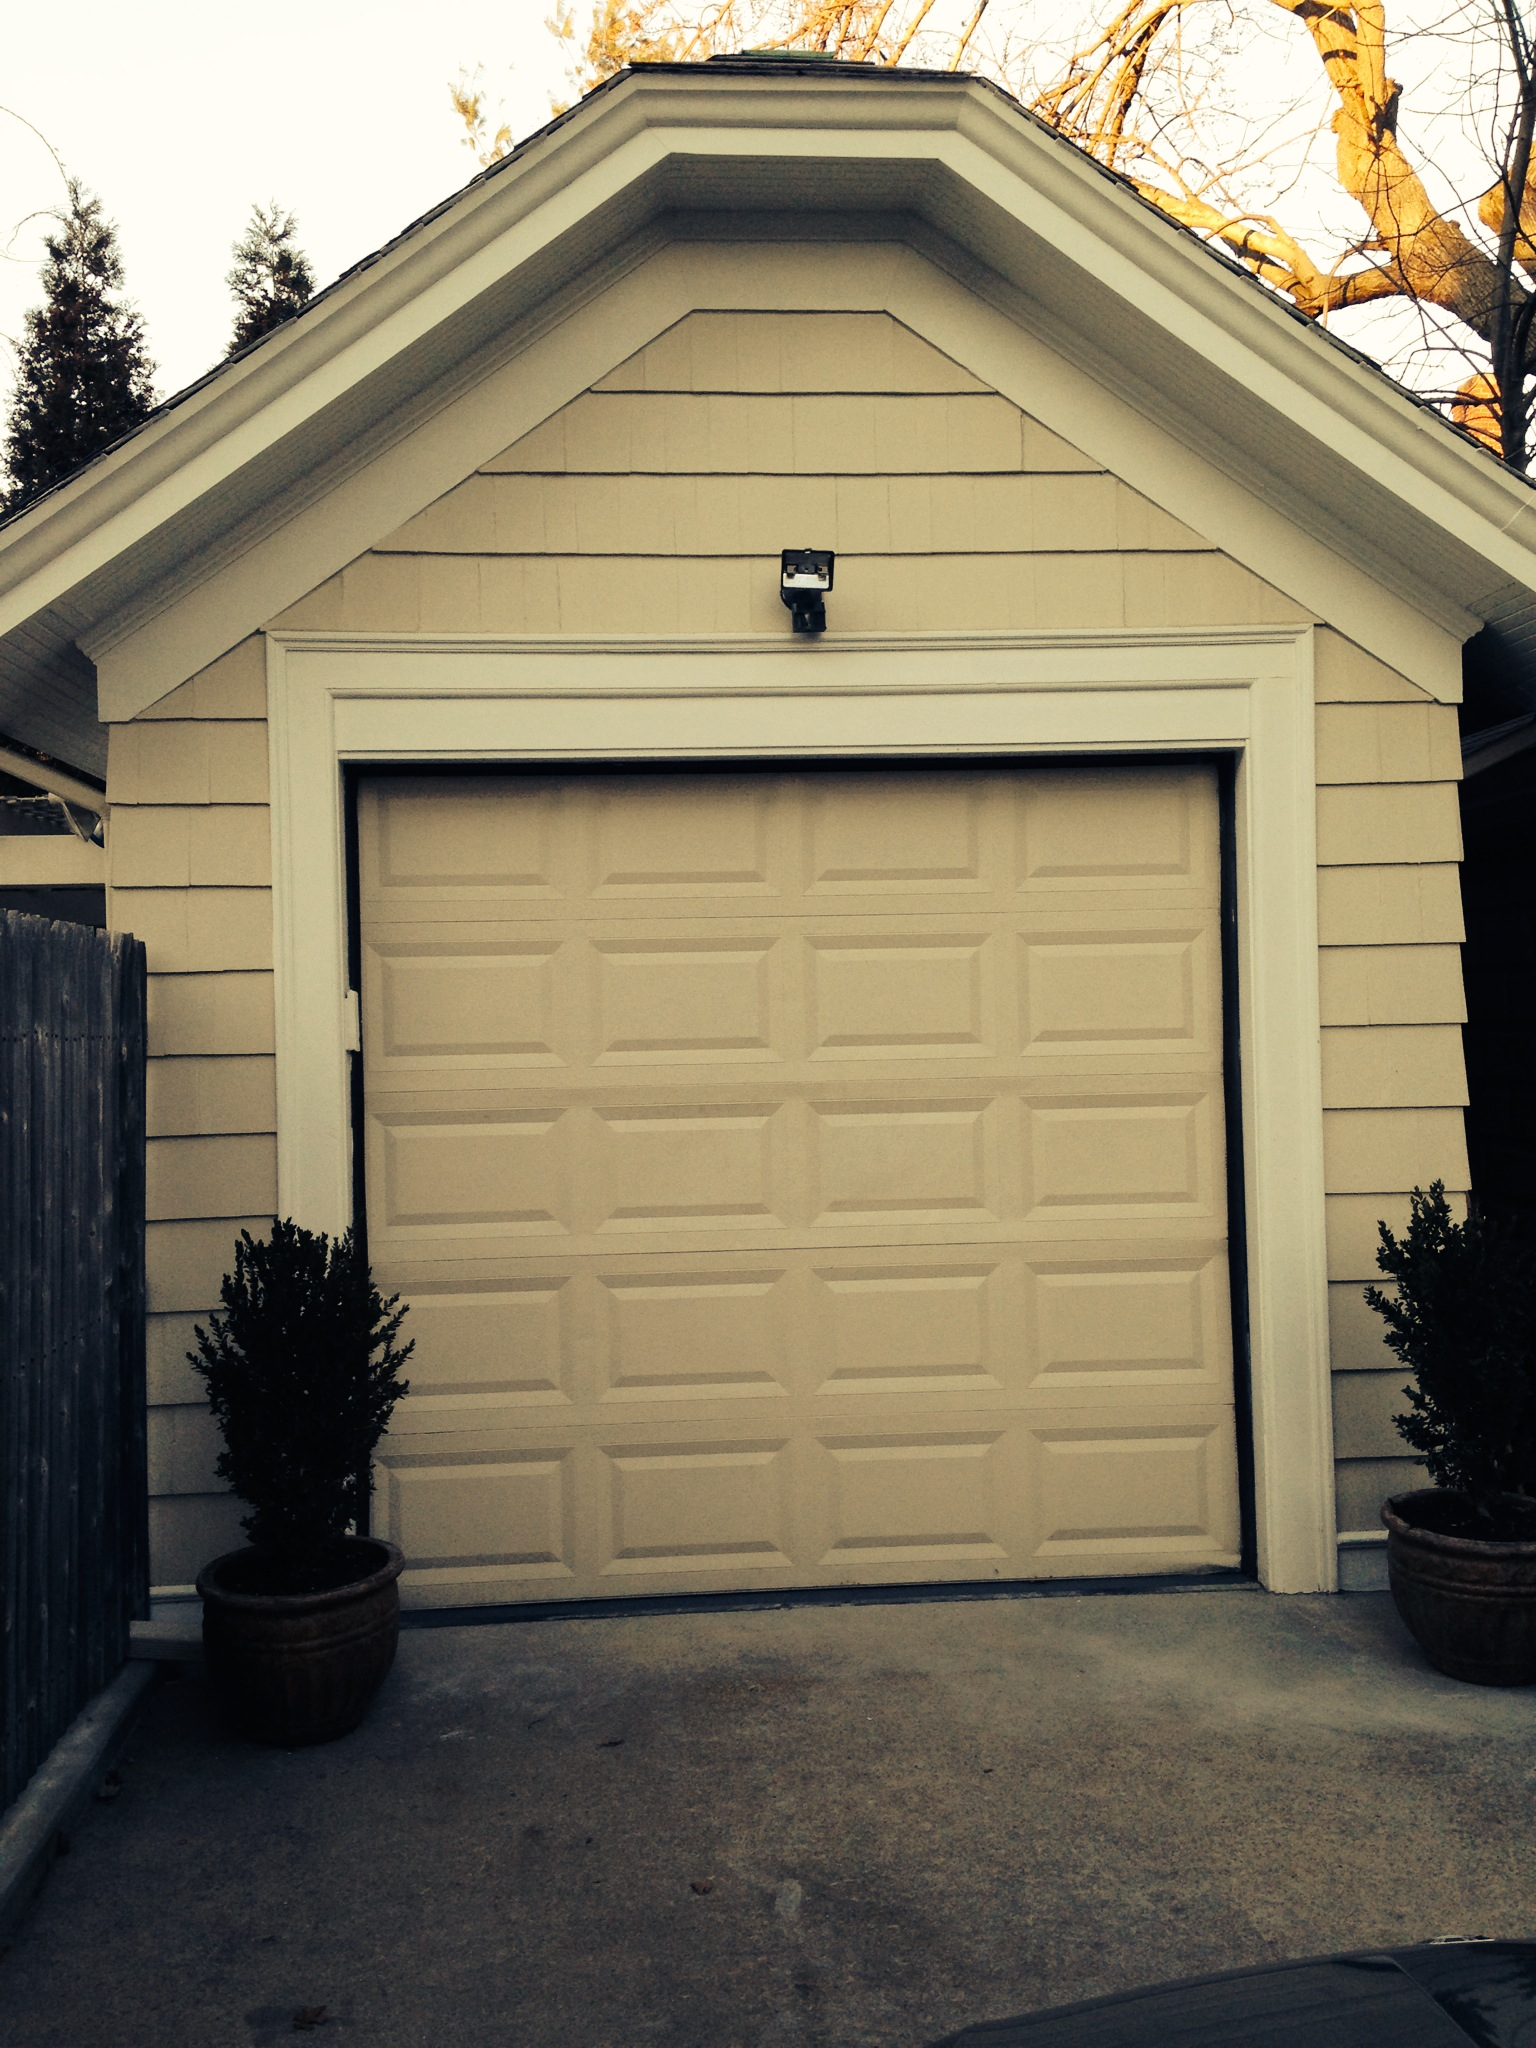 this is the garage door that came with the purchase of the house; it had to go to increase the size of the yard.